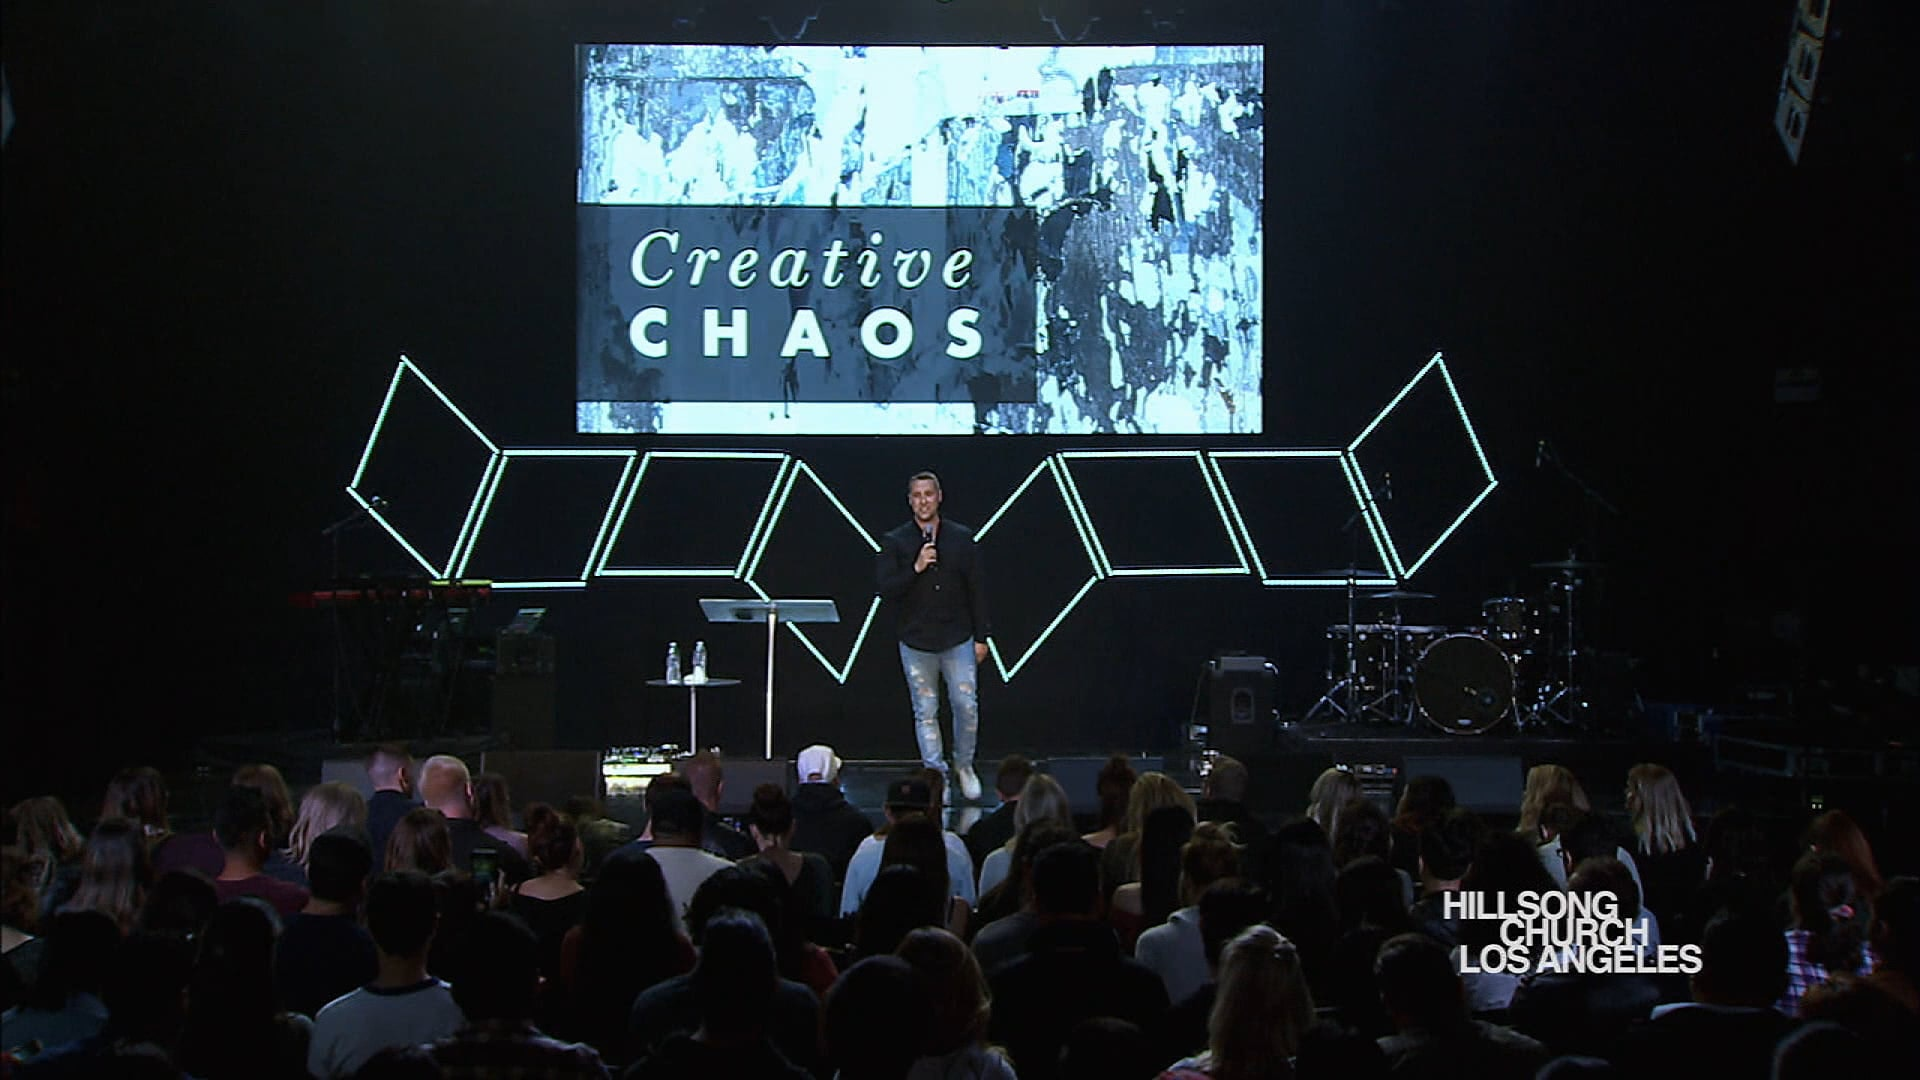 Hillsong church los angeles live stream